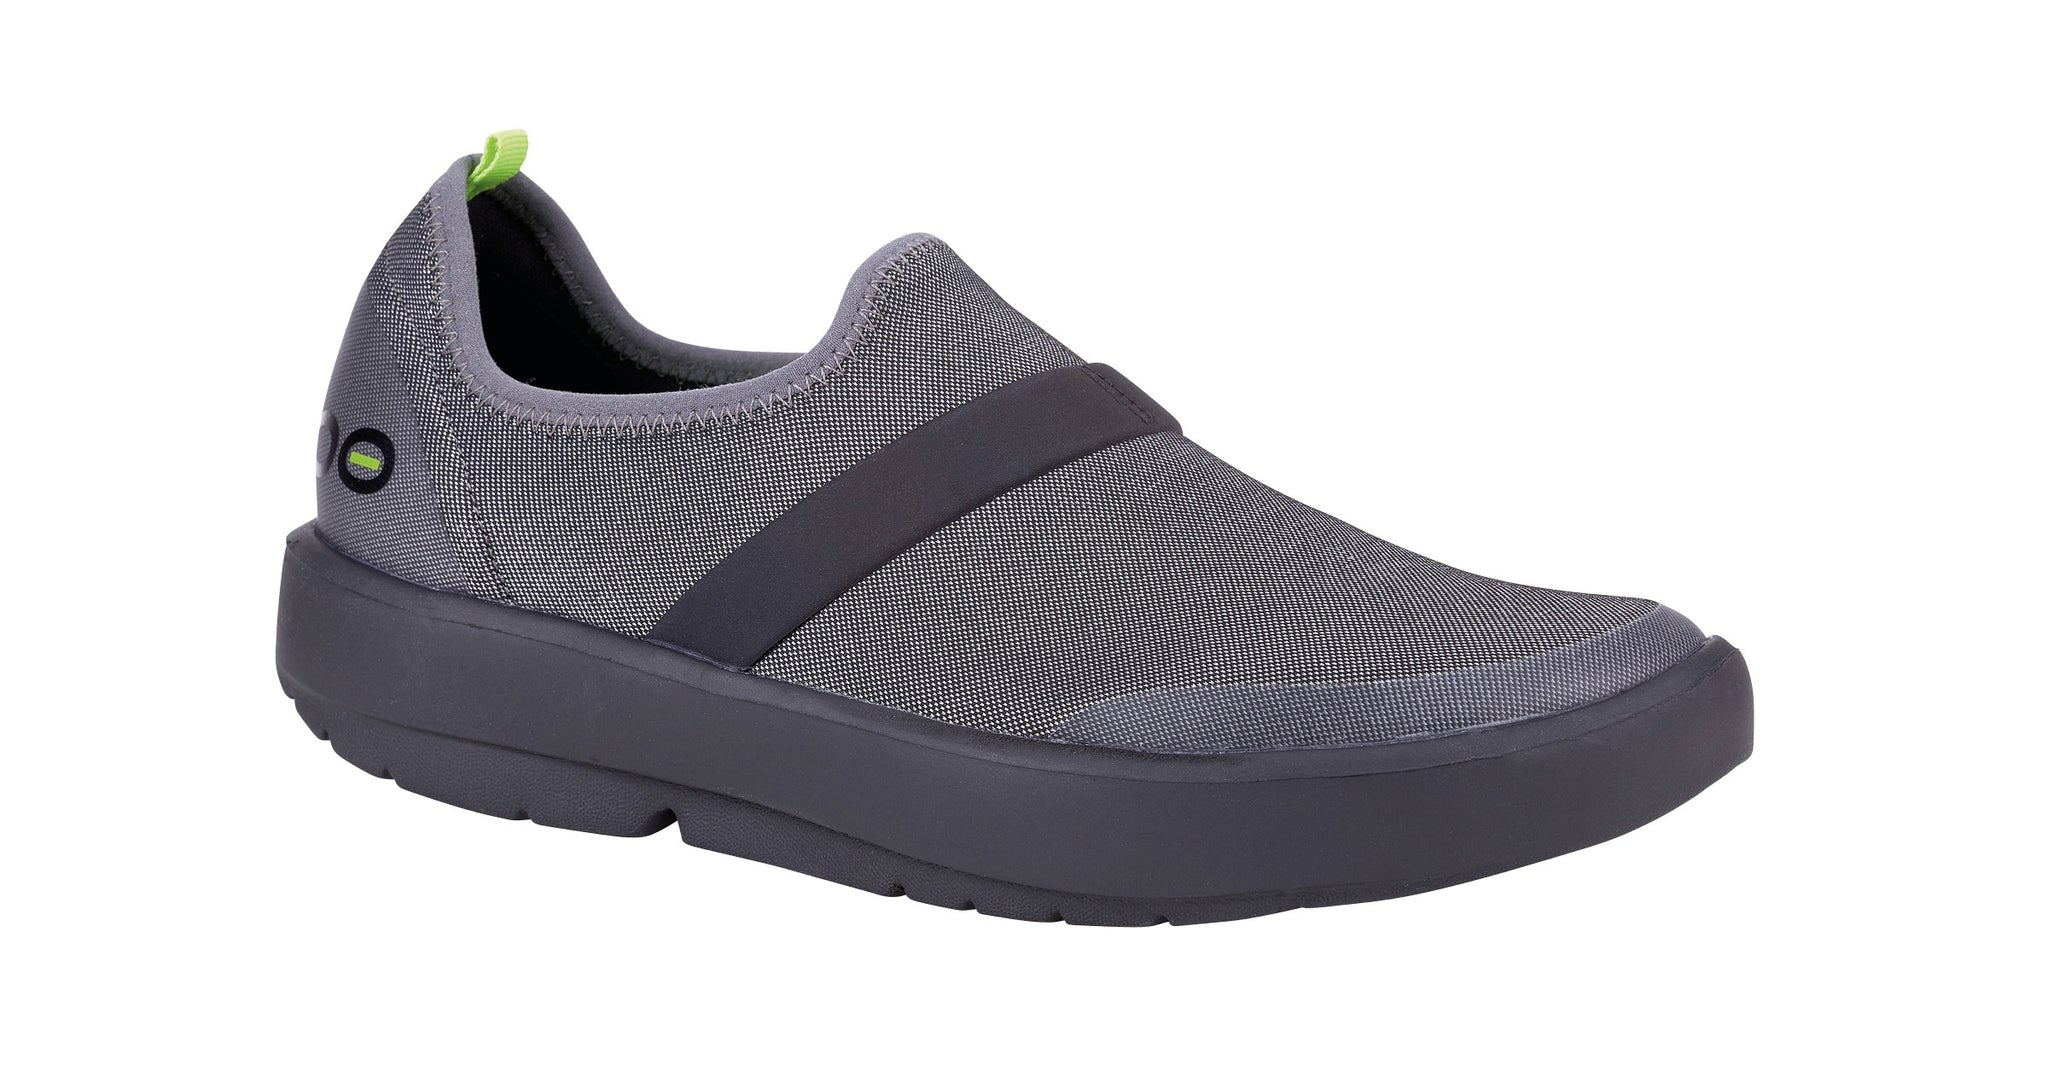 co Oofos Recovery uk Women's Oofos Footwear nWSYYR